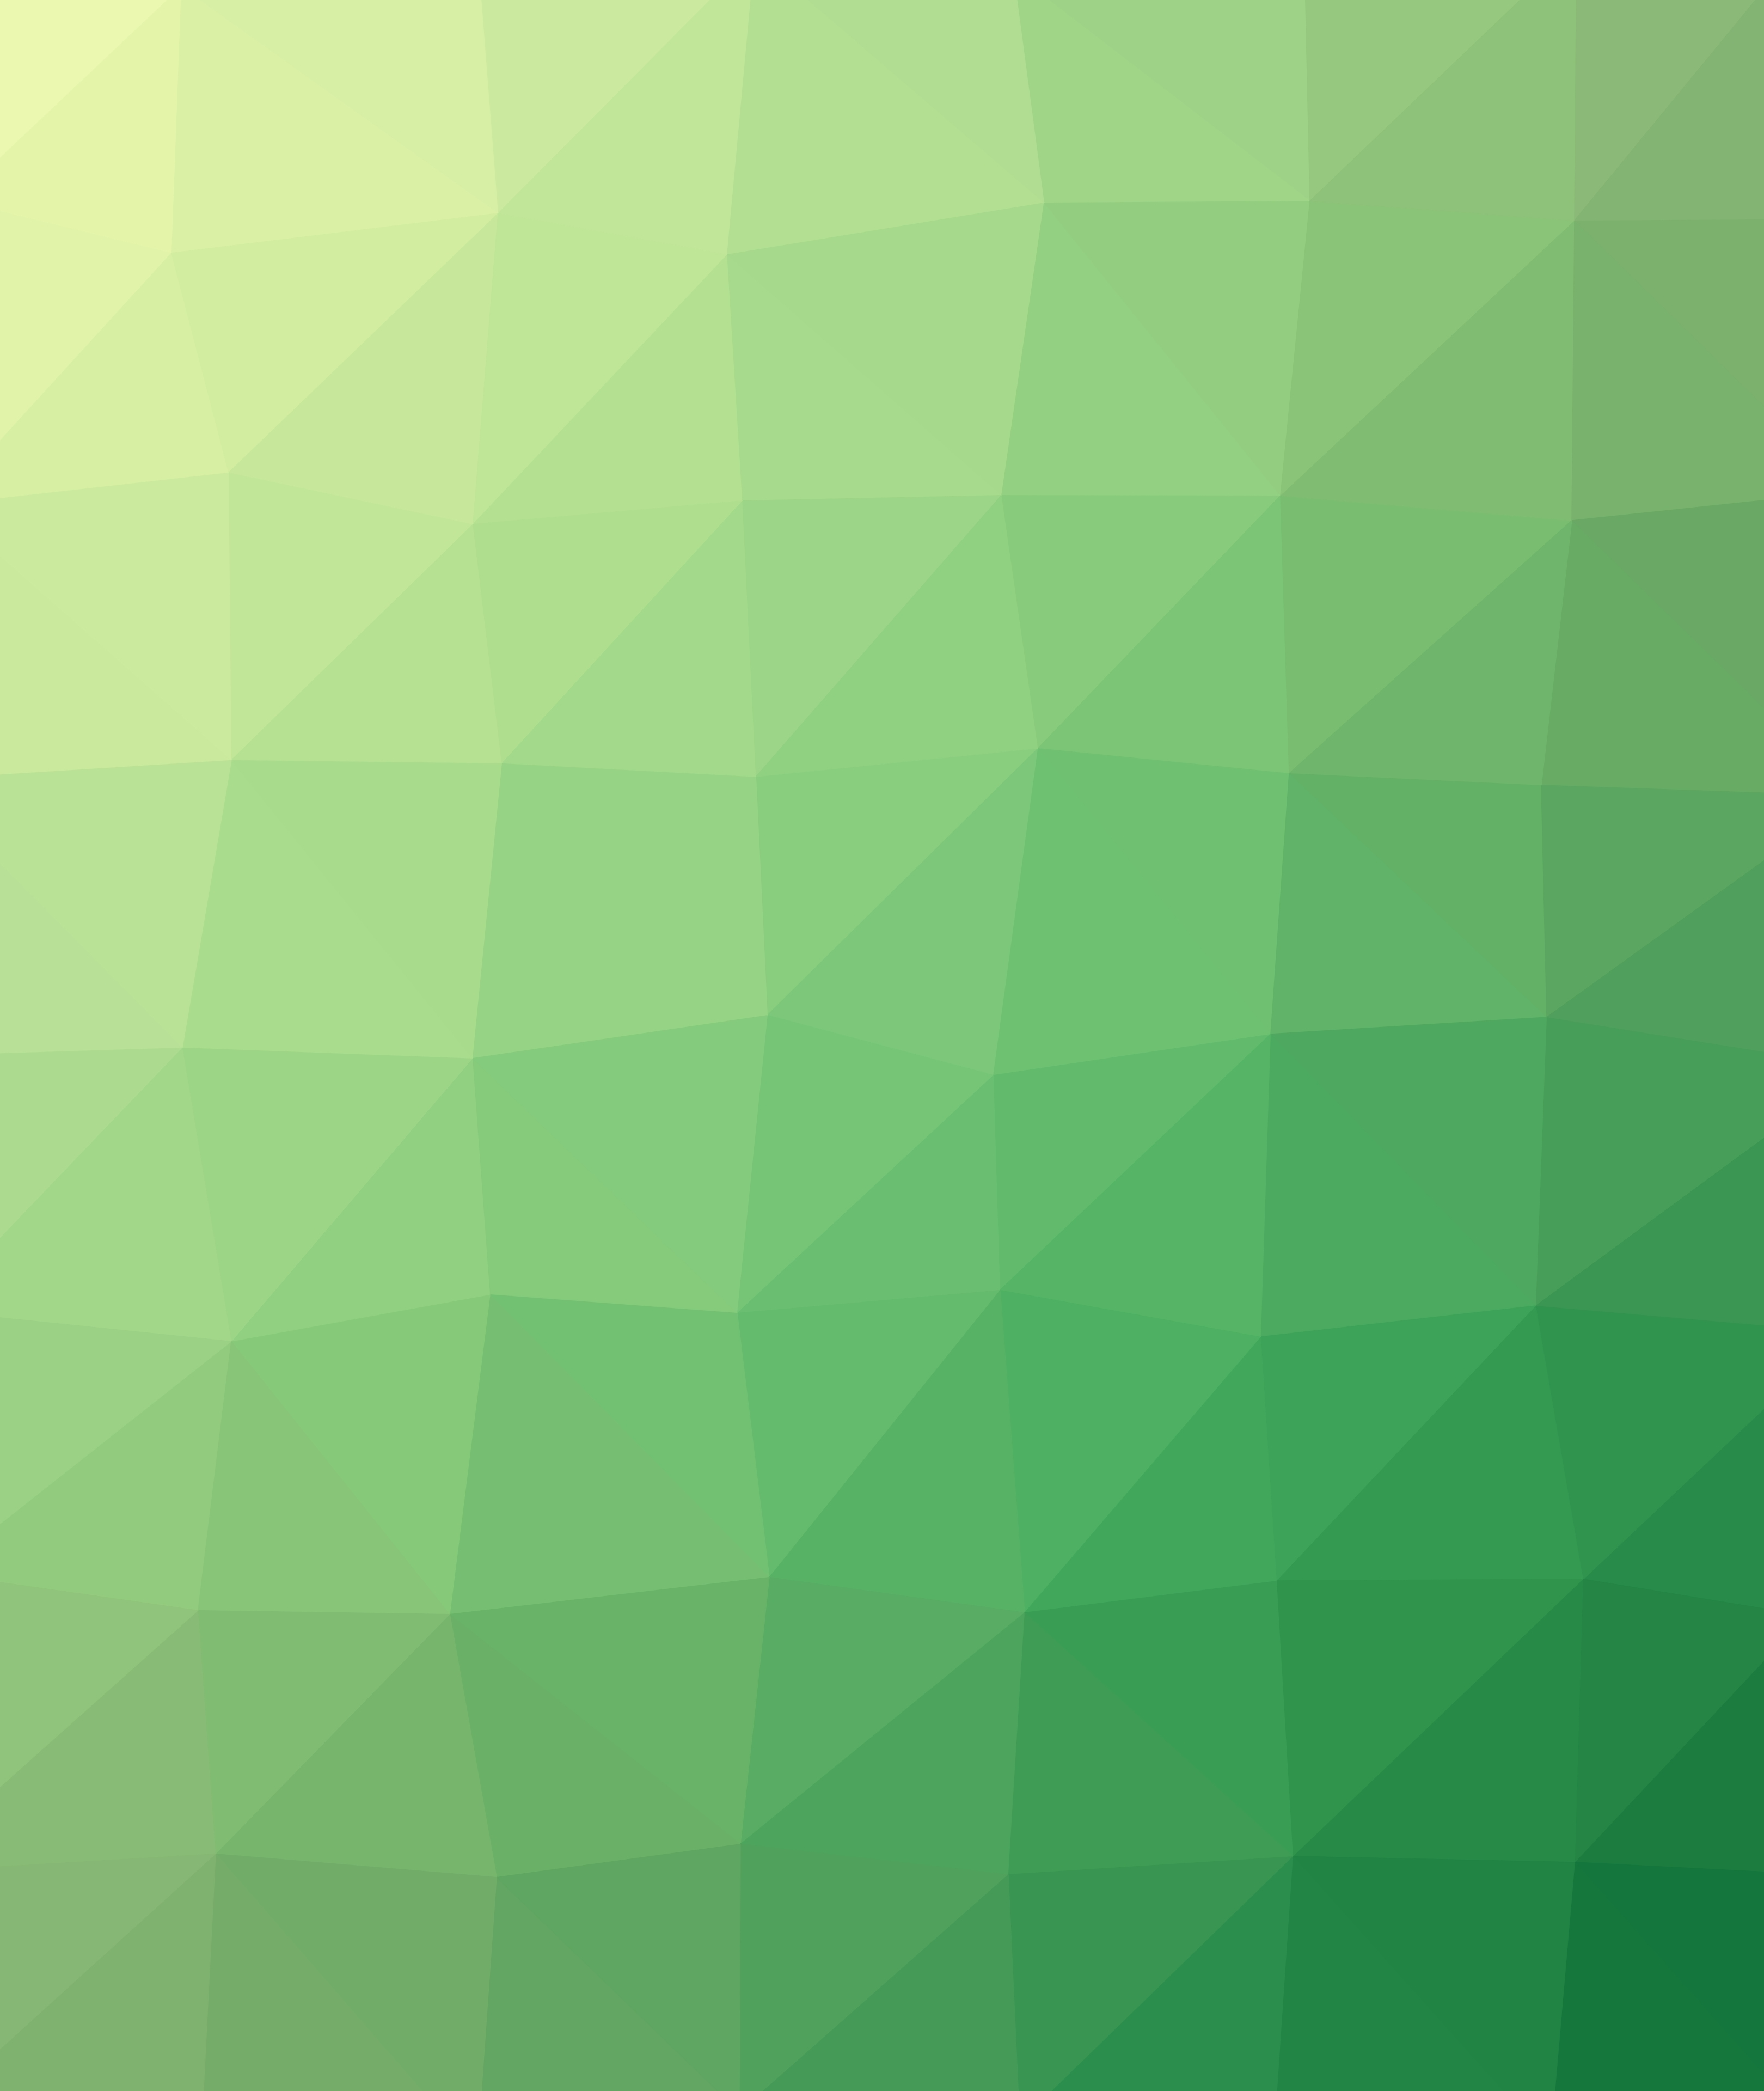 119973 download wallpaper Textures, Texture, Polygon, Gradient, Convex, Triangles, Polygons screensavers and pictures for free